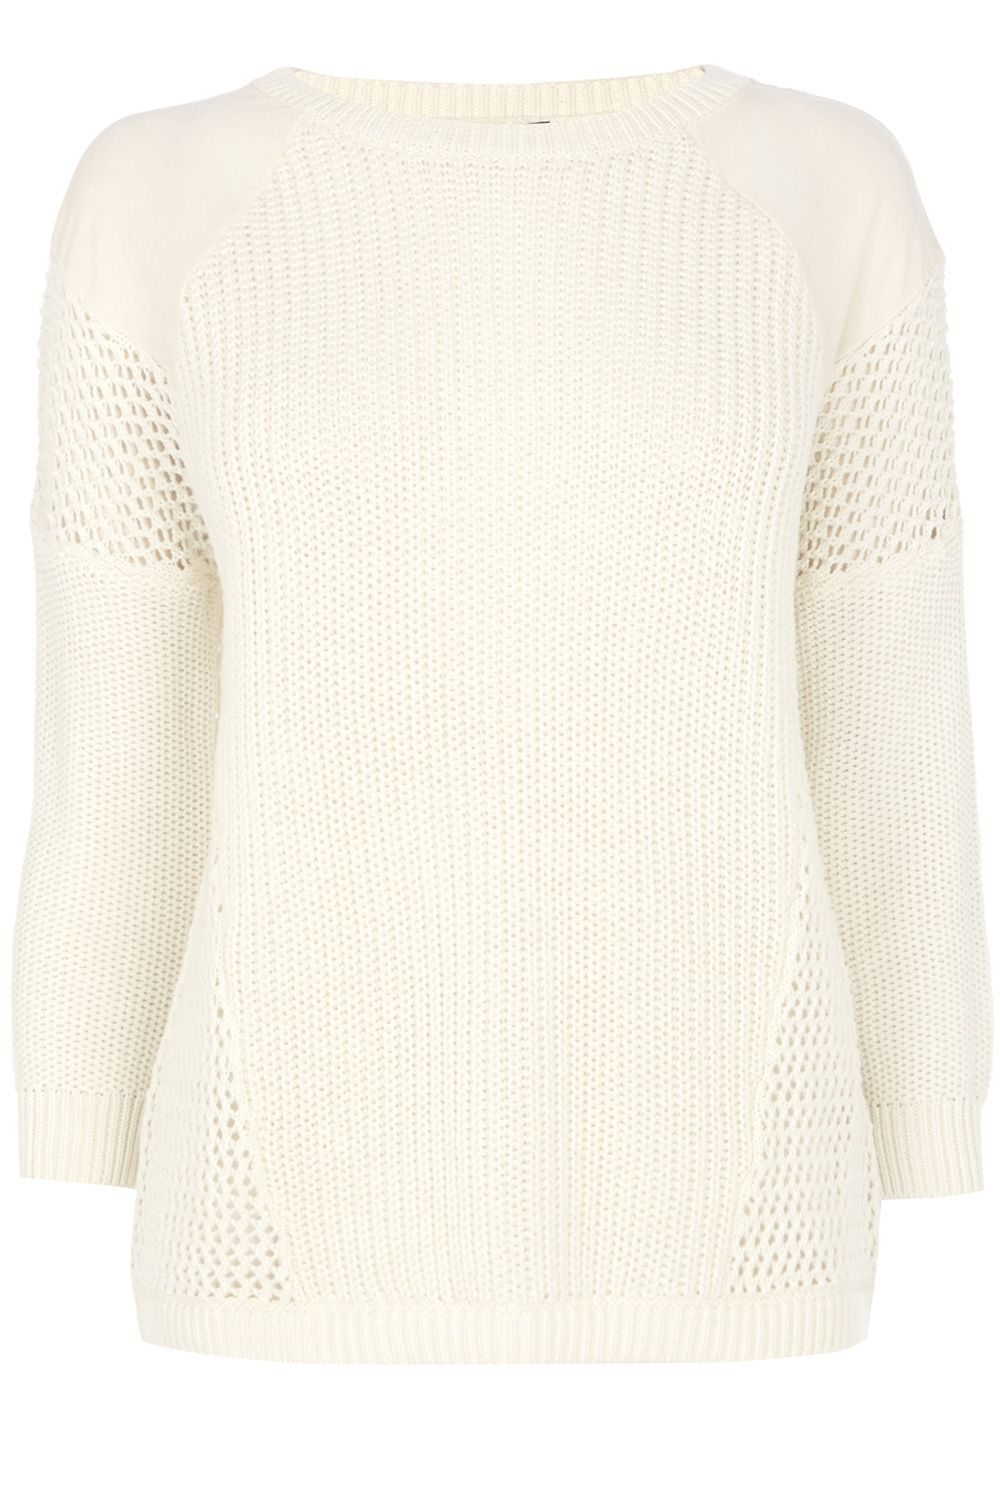 Woven shoulder stitch block jumper